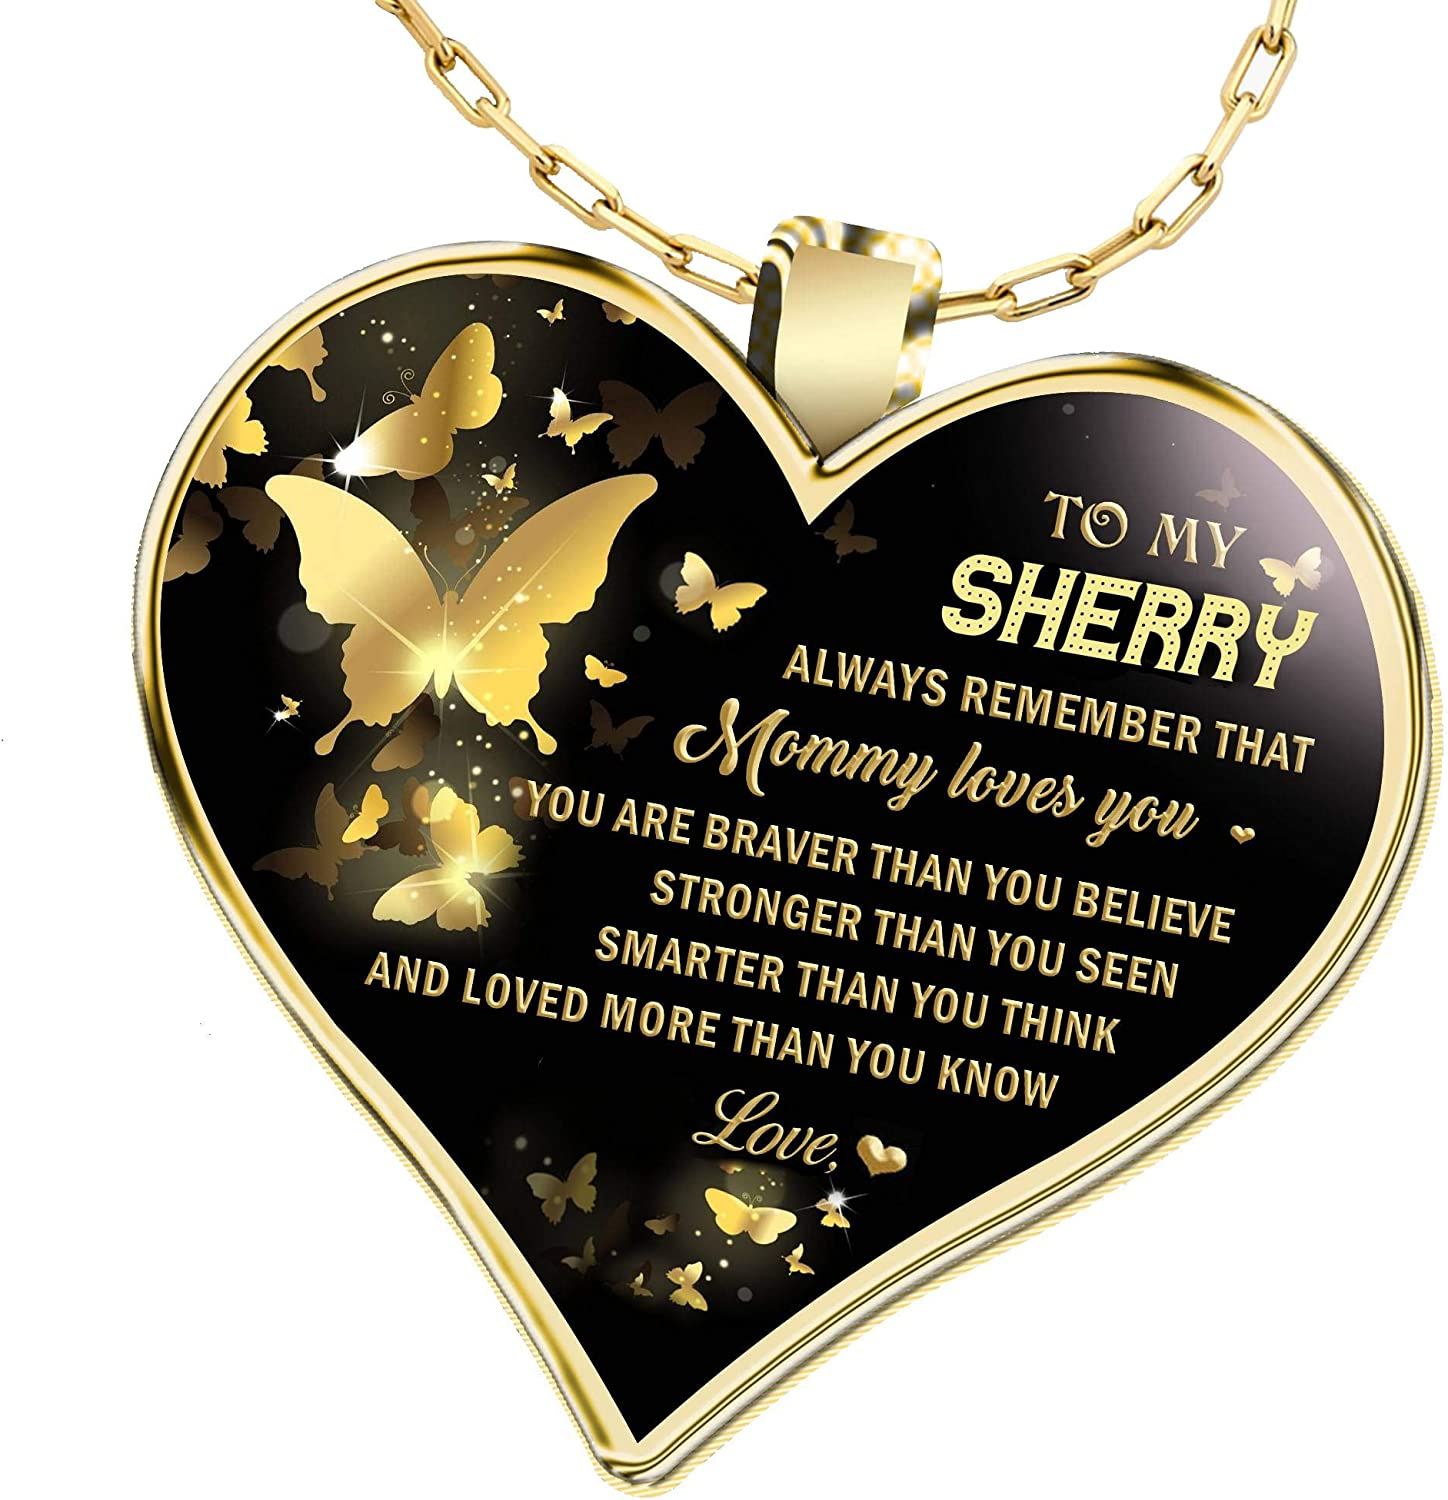 Gifts Necklace Bombing free shipping Name for Wife to My Minneapolis Mall Remember Sherry Always That M